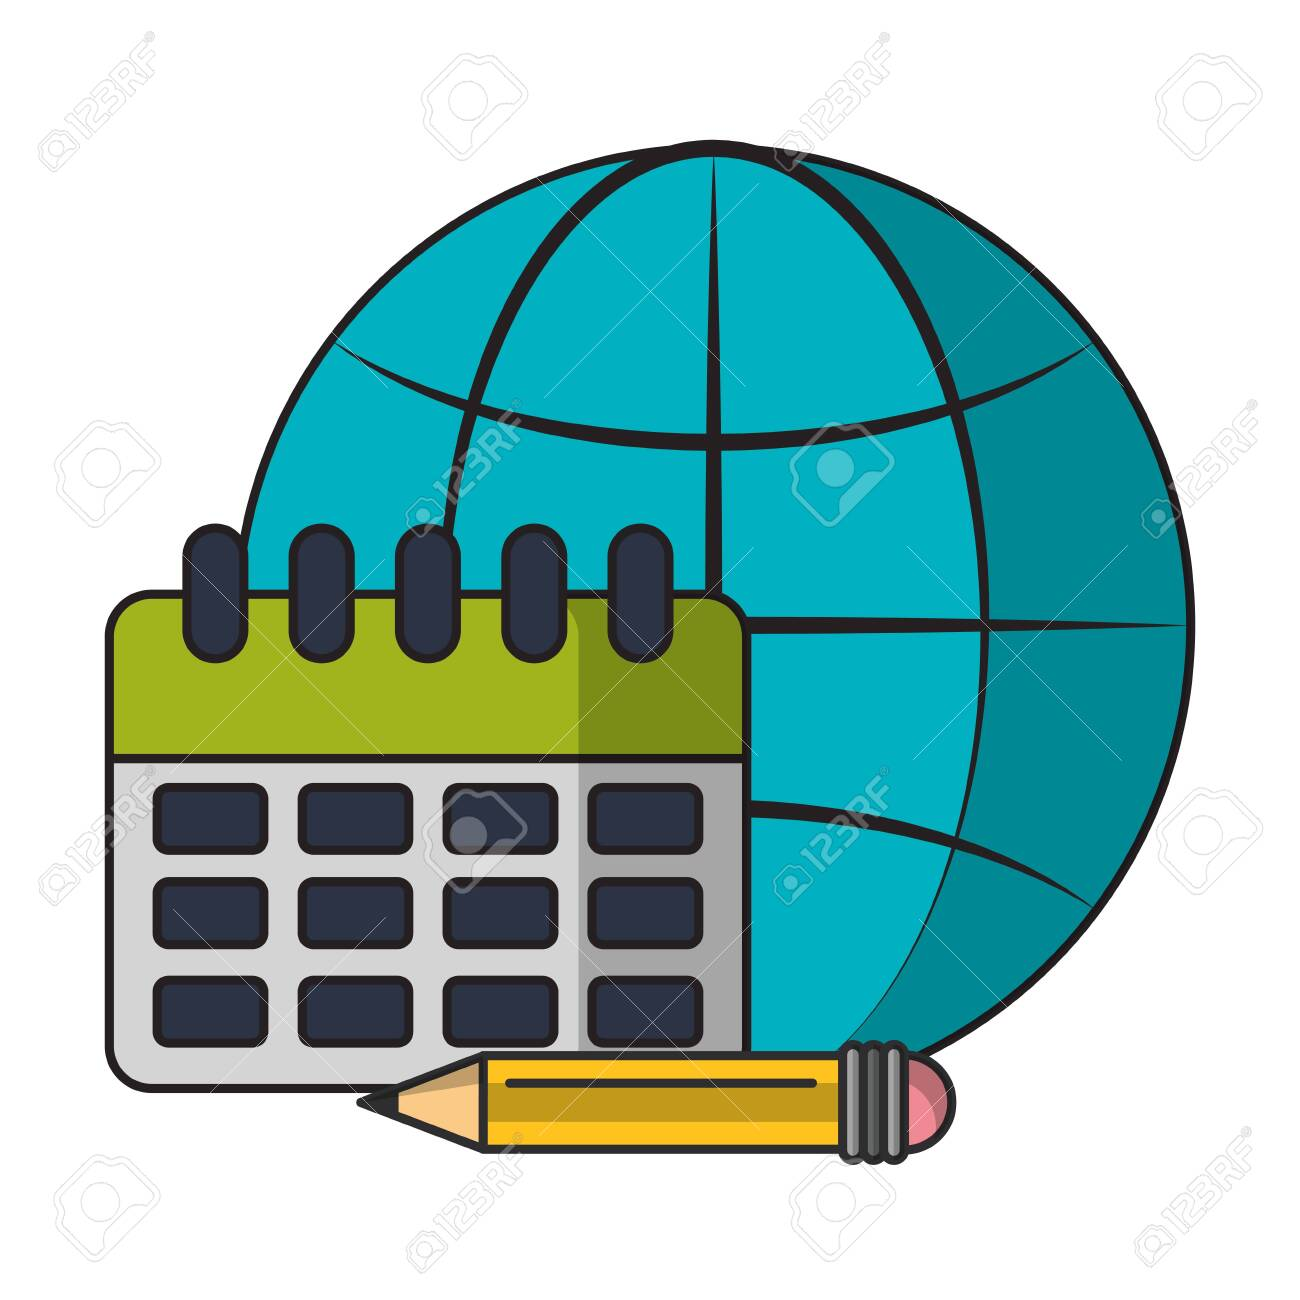 technology device internet globe icon with success work elements